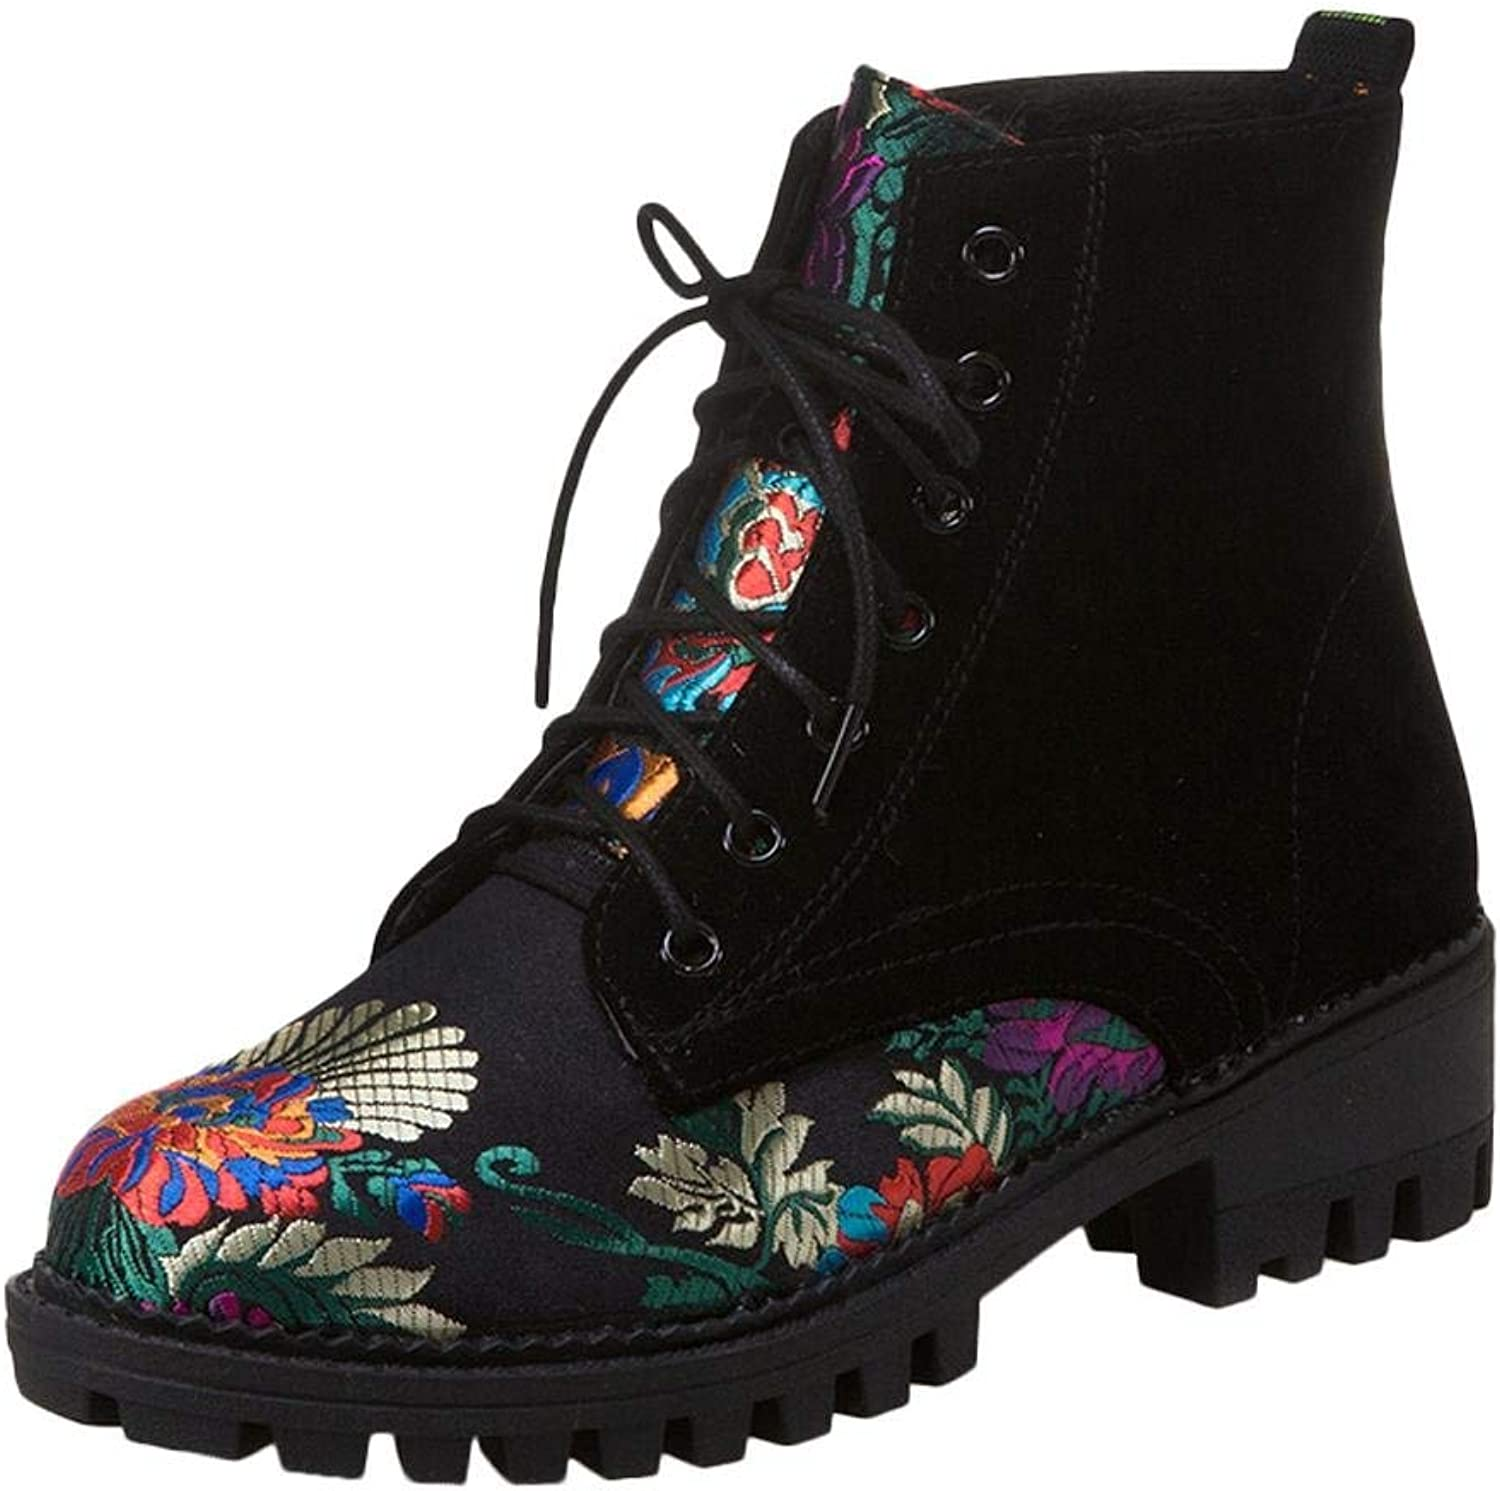 Lelehwhge Women's Lace Up Embroidery Flowers Low Heel Martin Boots Black 7 M US